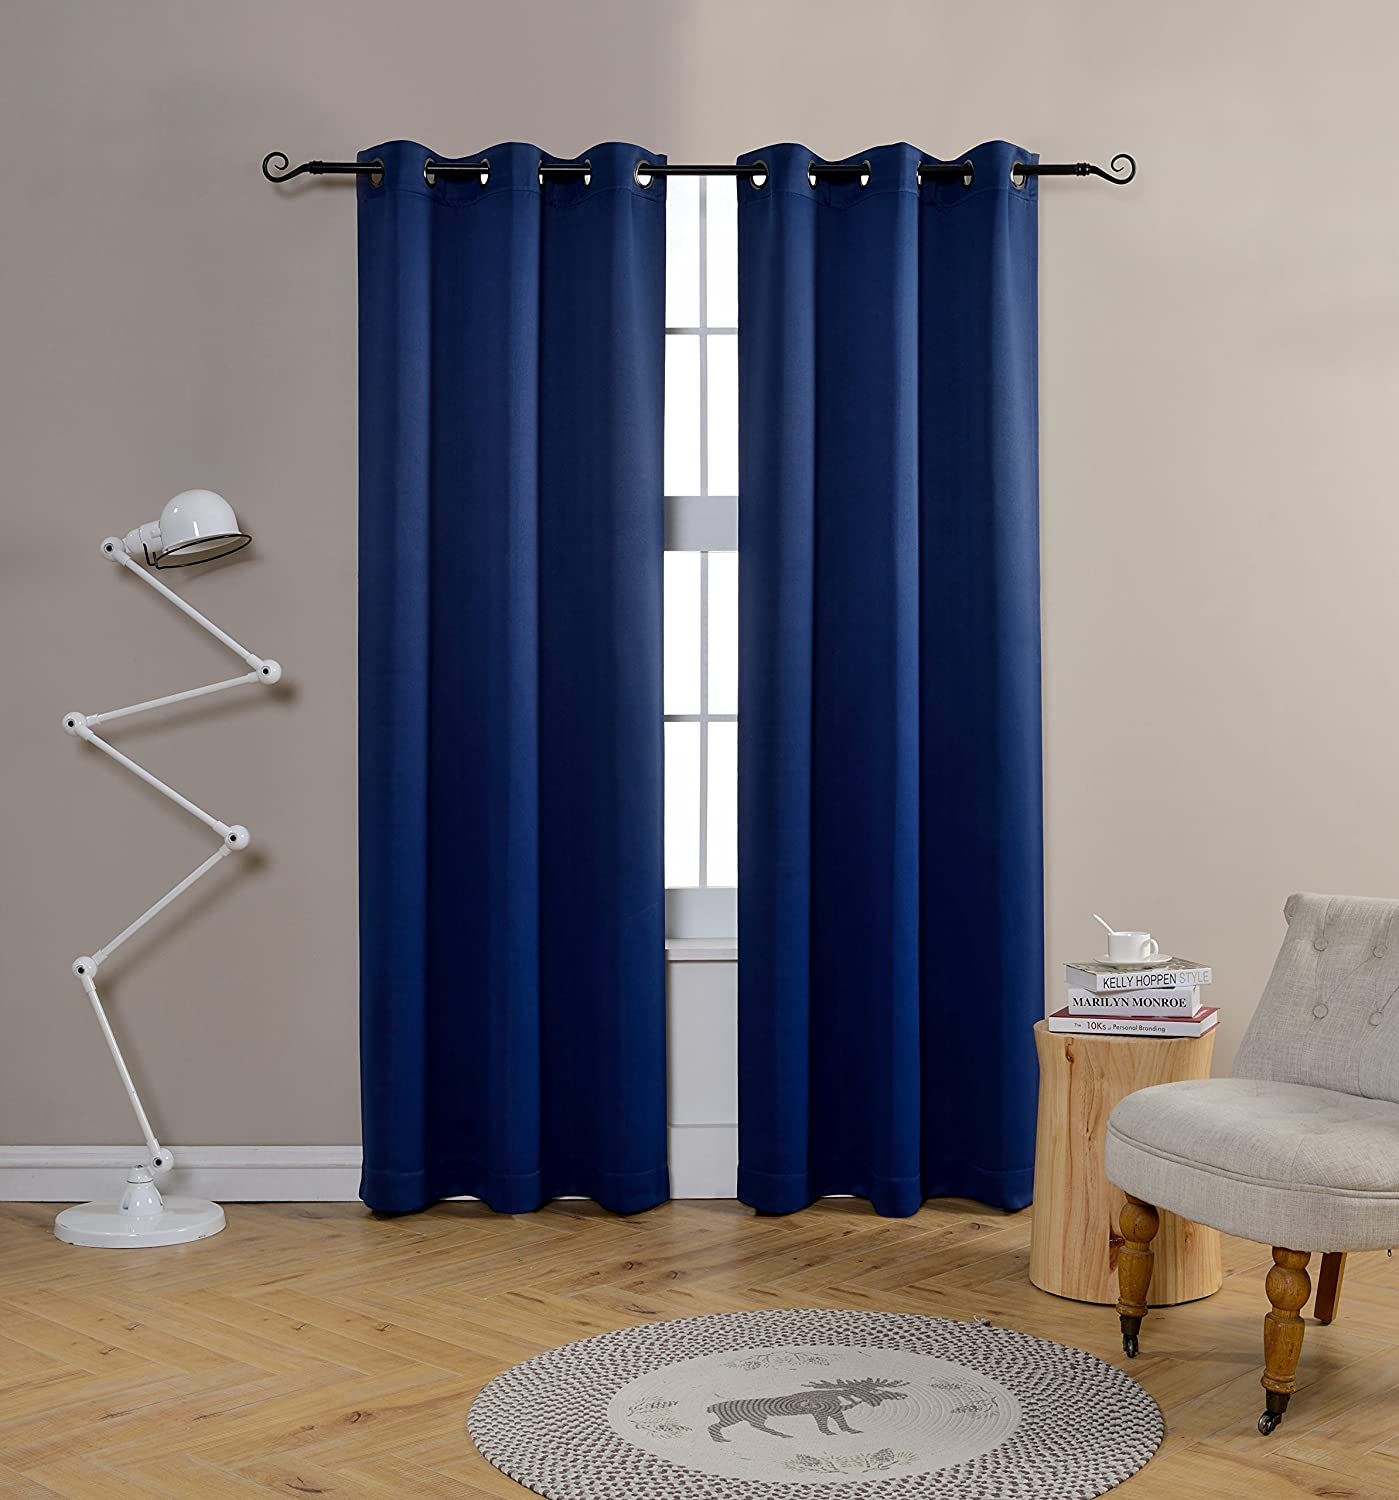 Mysky Home Grommet top Thermal Insulated Window Blackout Curtain for Living Room Navy